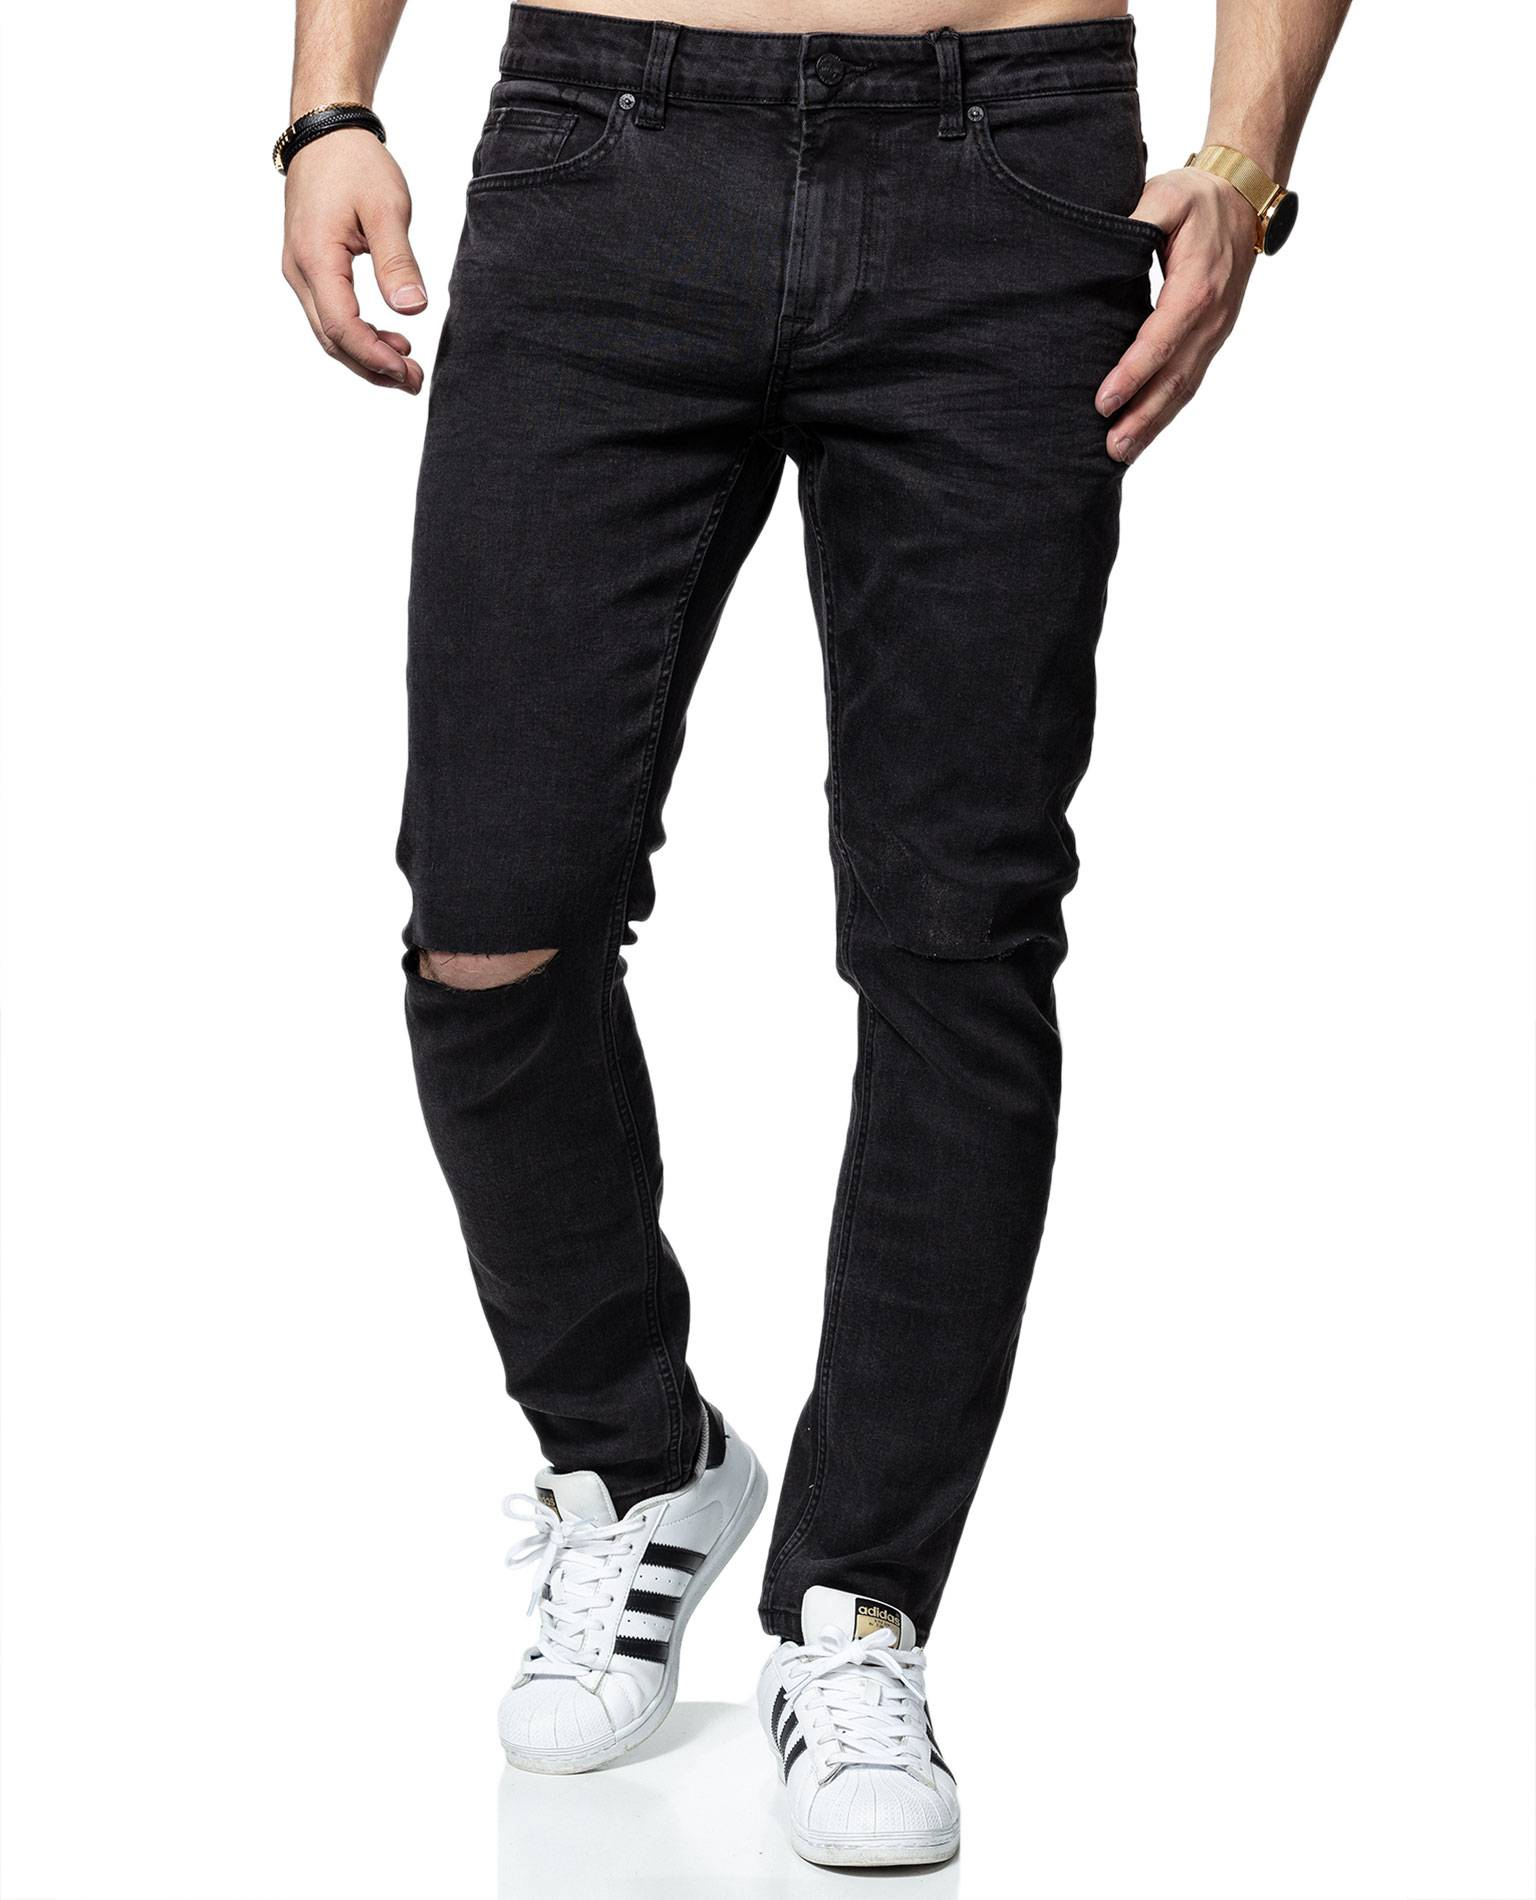 Warp Black Washed Knee-Cut L34 Only & Sons